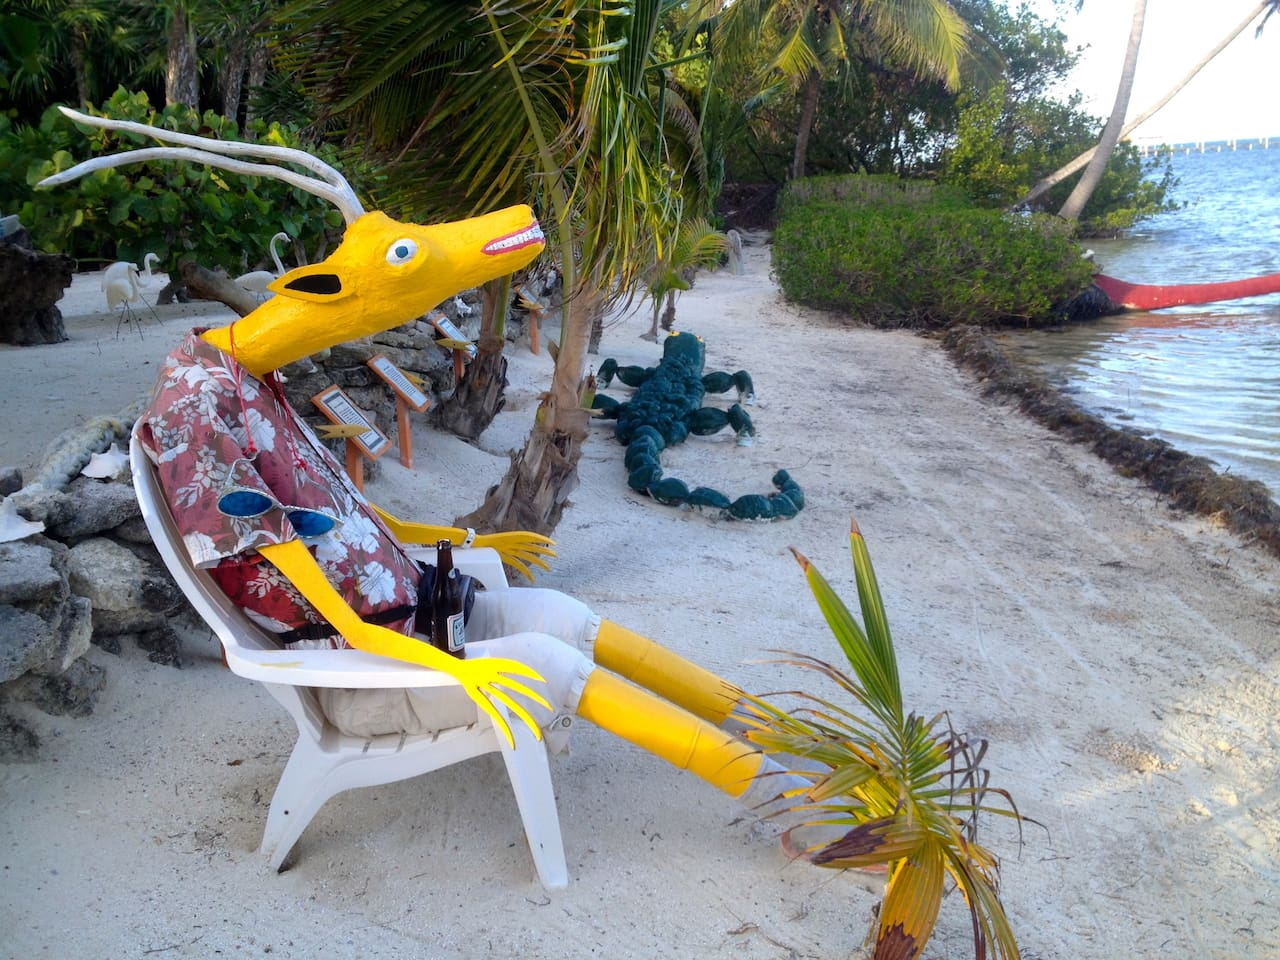 You never know who -or what?!- you might meet hanging out on the beach in Ambergris Caye .... this Driftwood Dude is one of our neighbors!